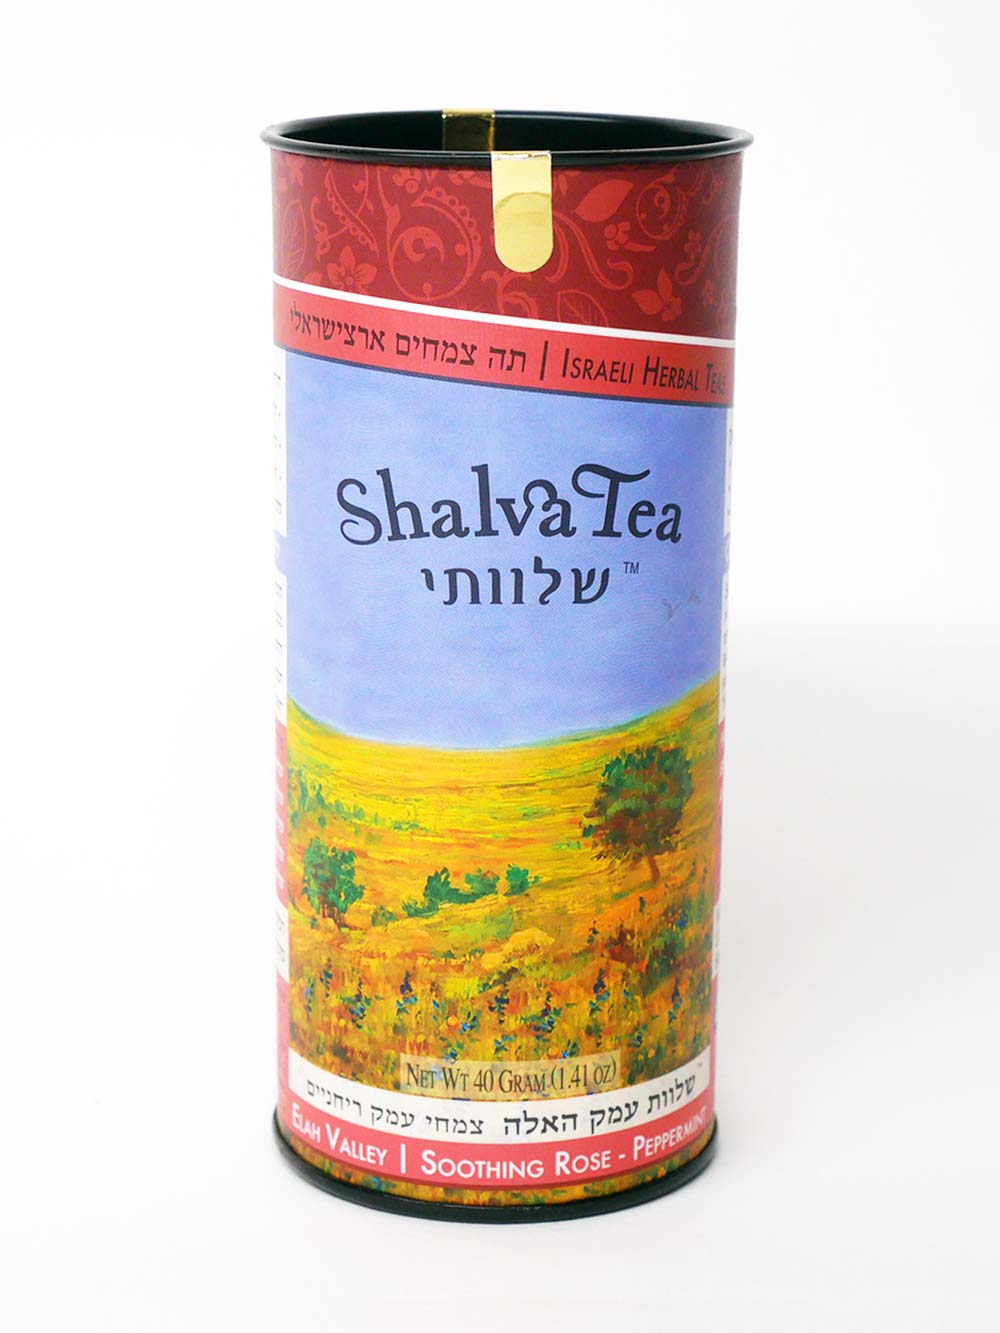 Soothing Rose-Peppermint | Elah Valley Blend (20 Teabags) - ShalvaTea Kosher Israeli Herbal Teas